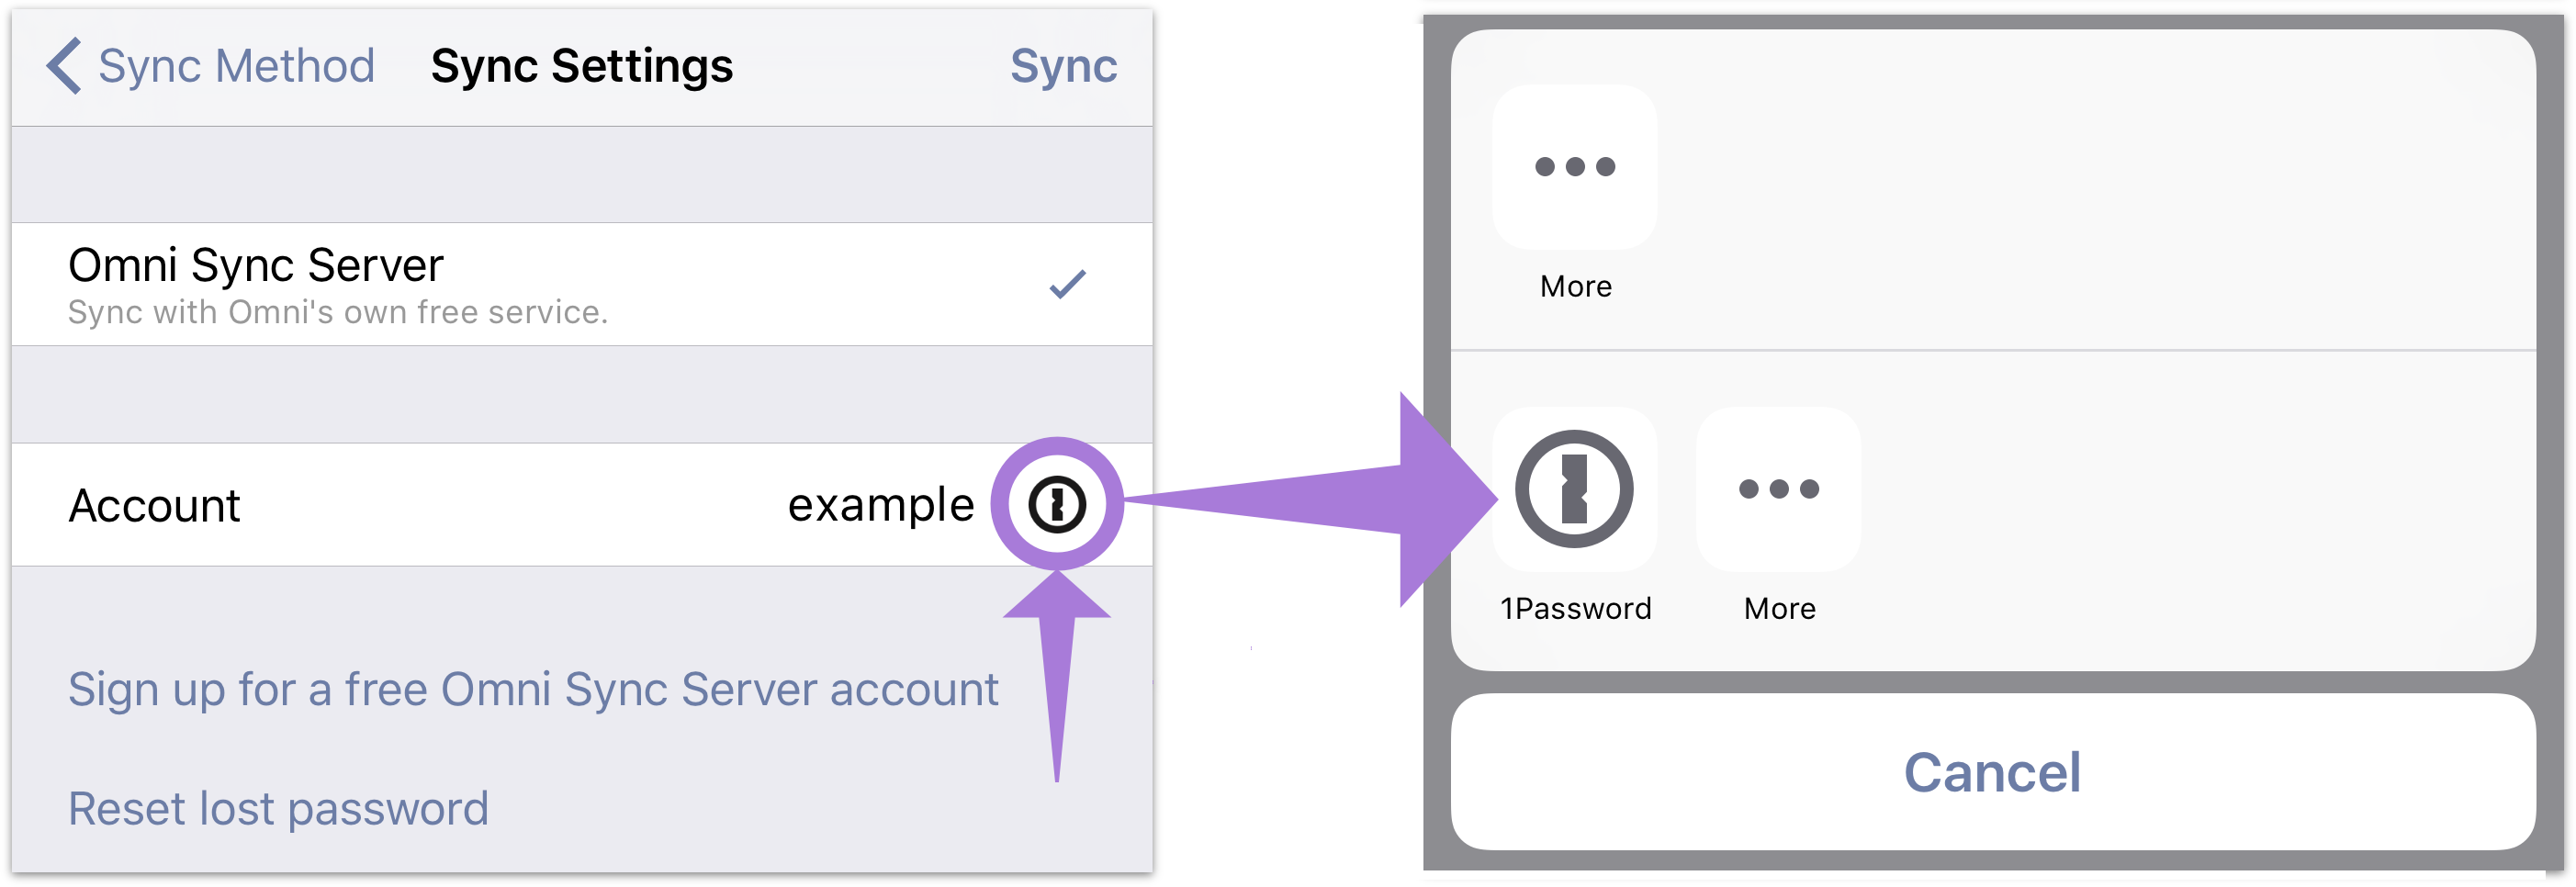 The Sync Settings screen with 1Password support available.